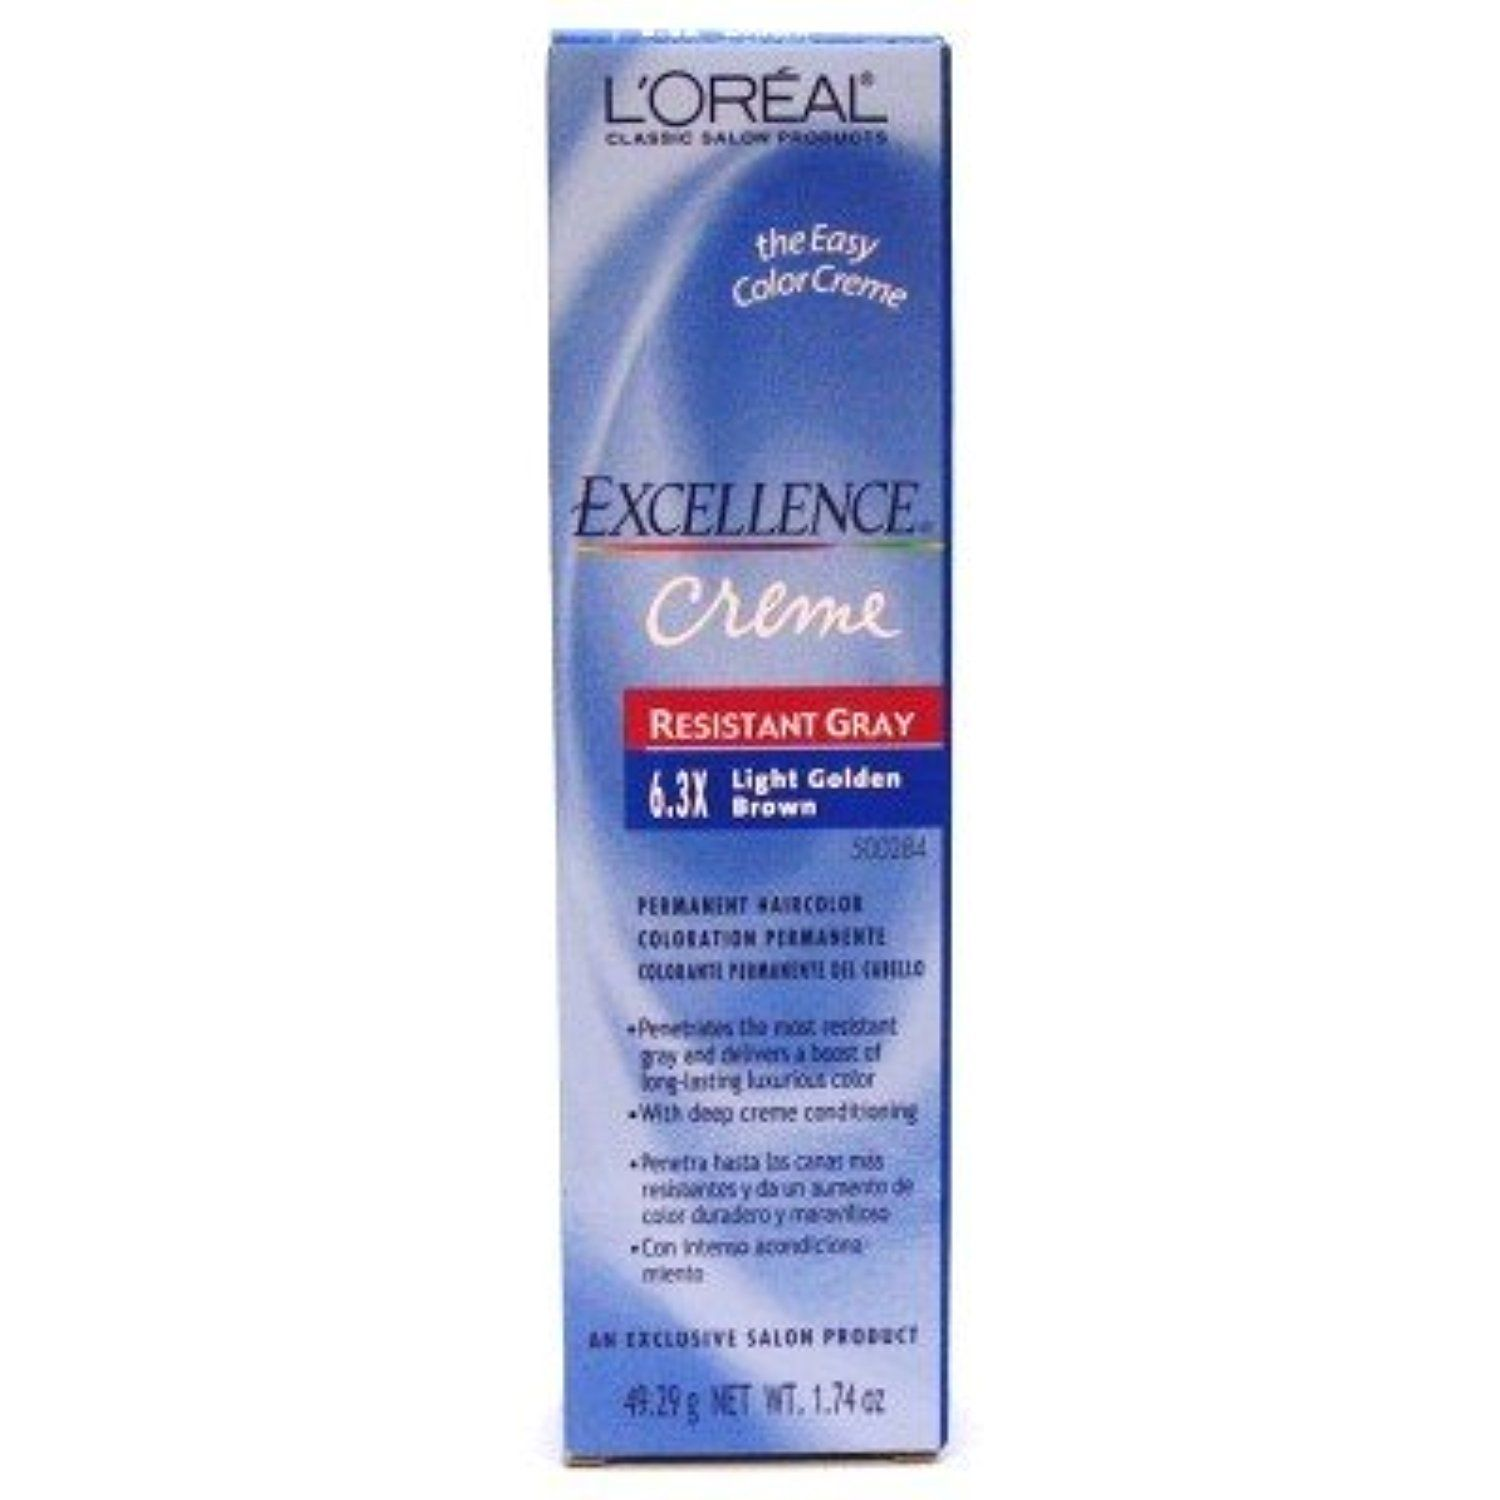 Luoreal excellence creme resistant personalcare personal care